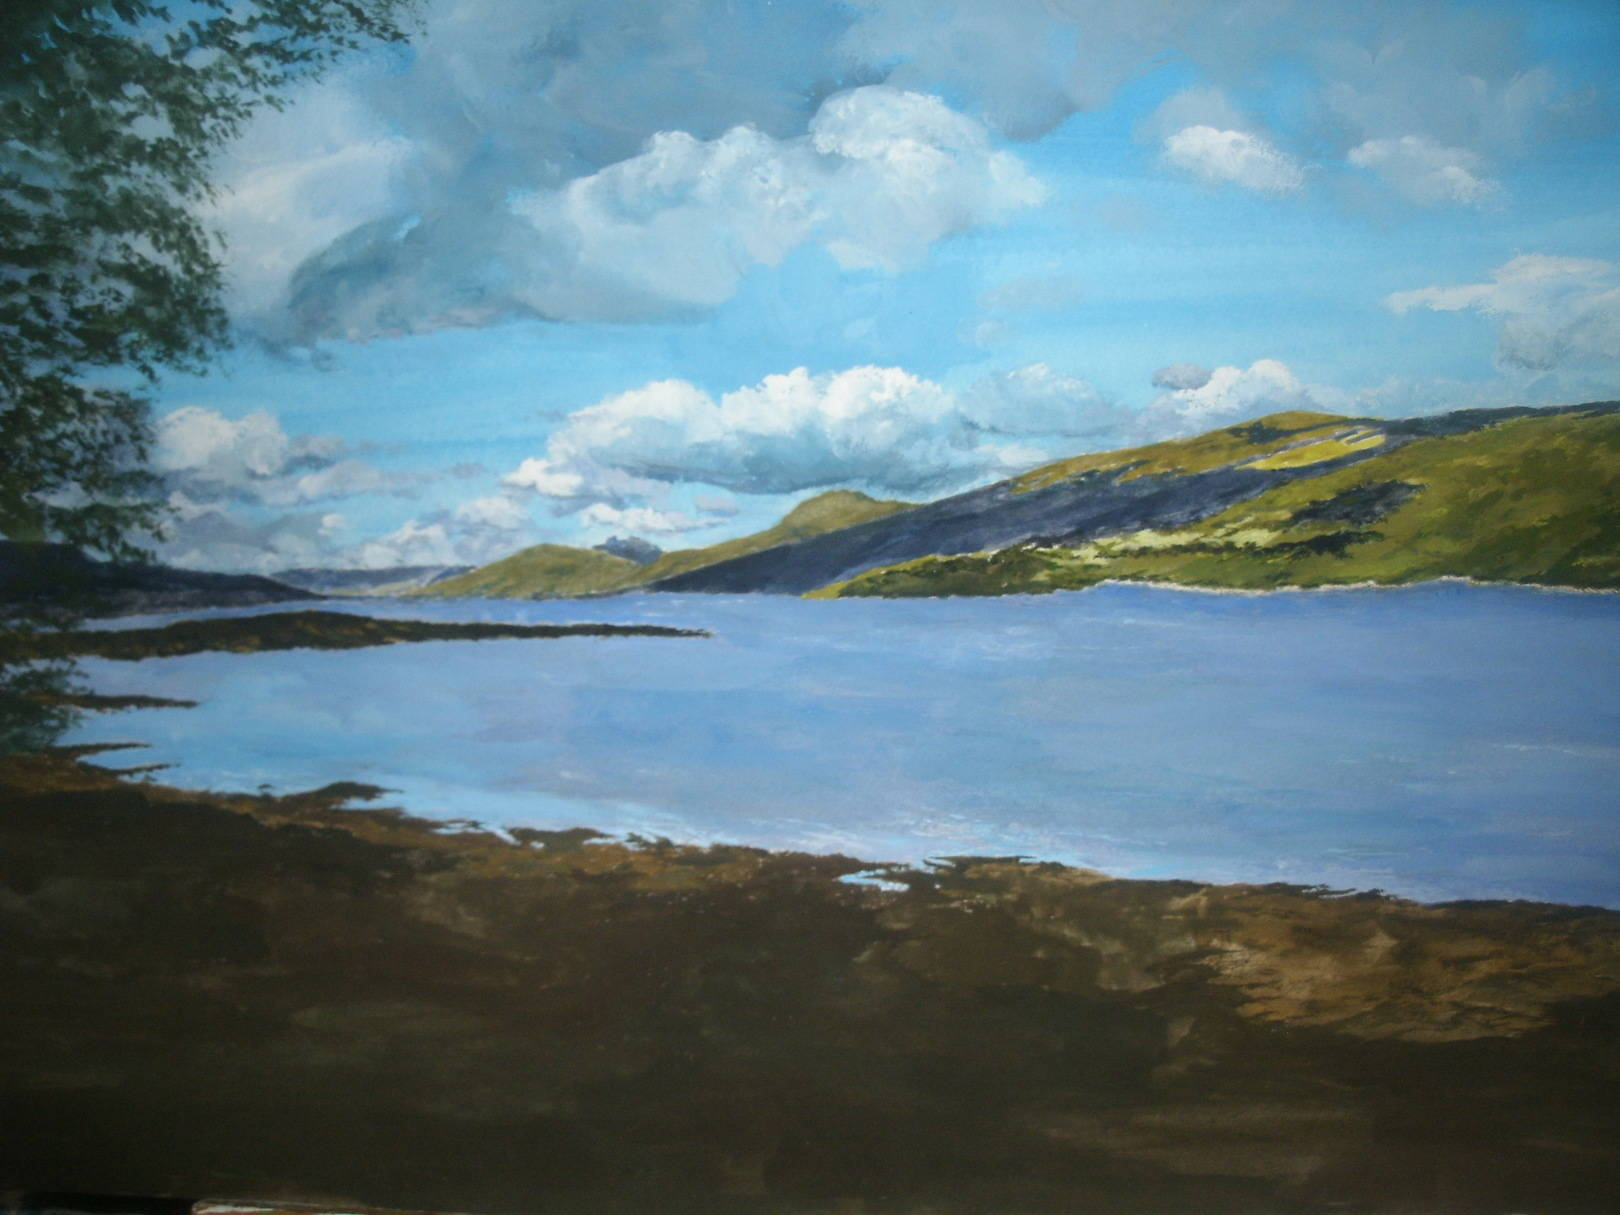 Title: Tranquil Waters  Loch Fyne Inveraray Scotland